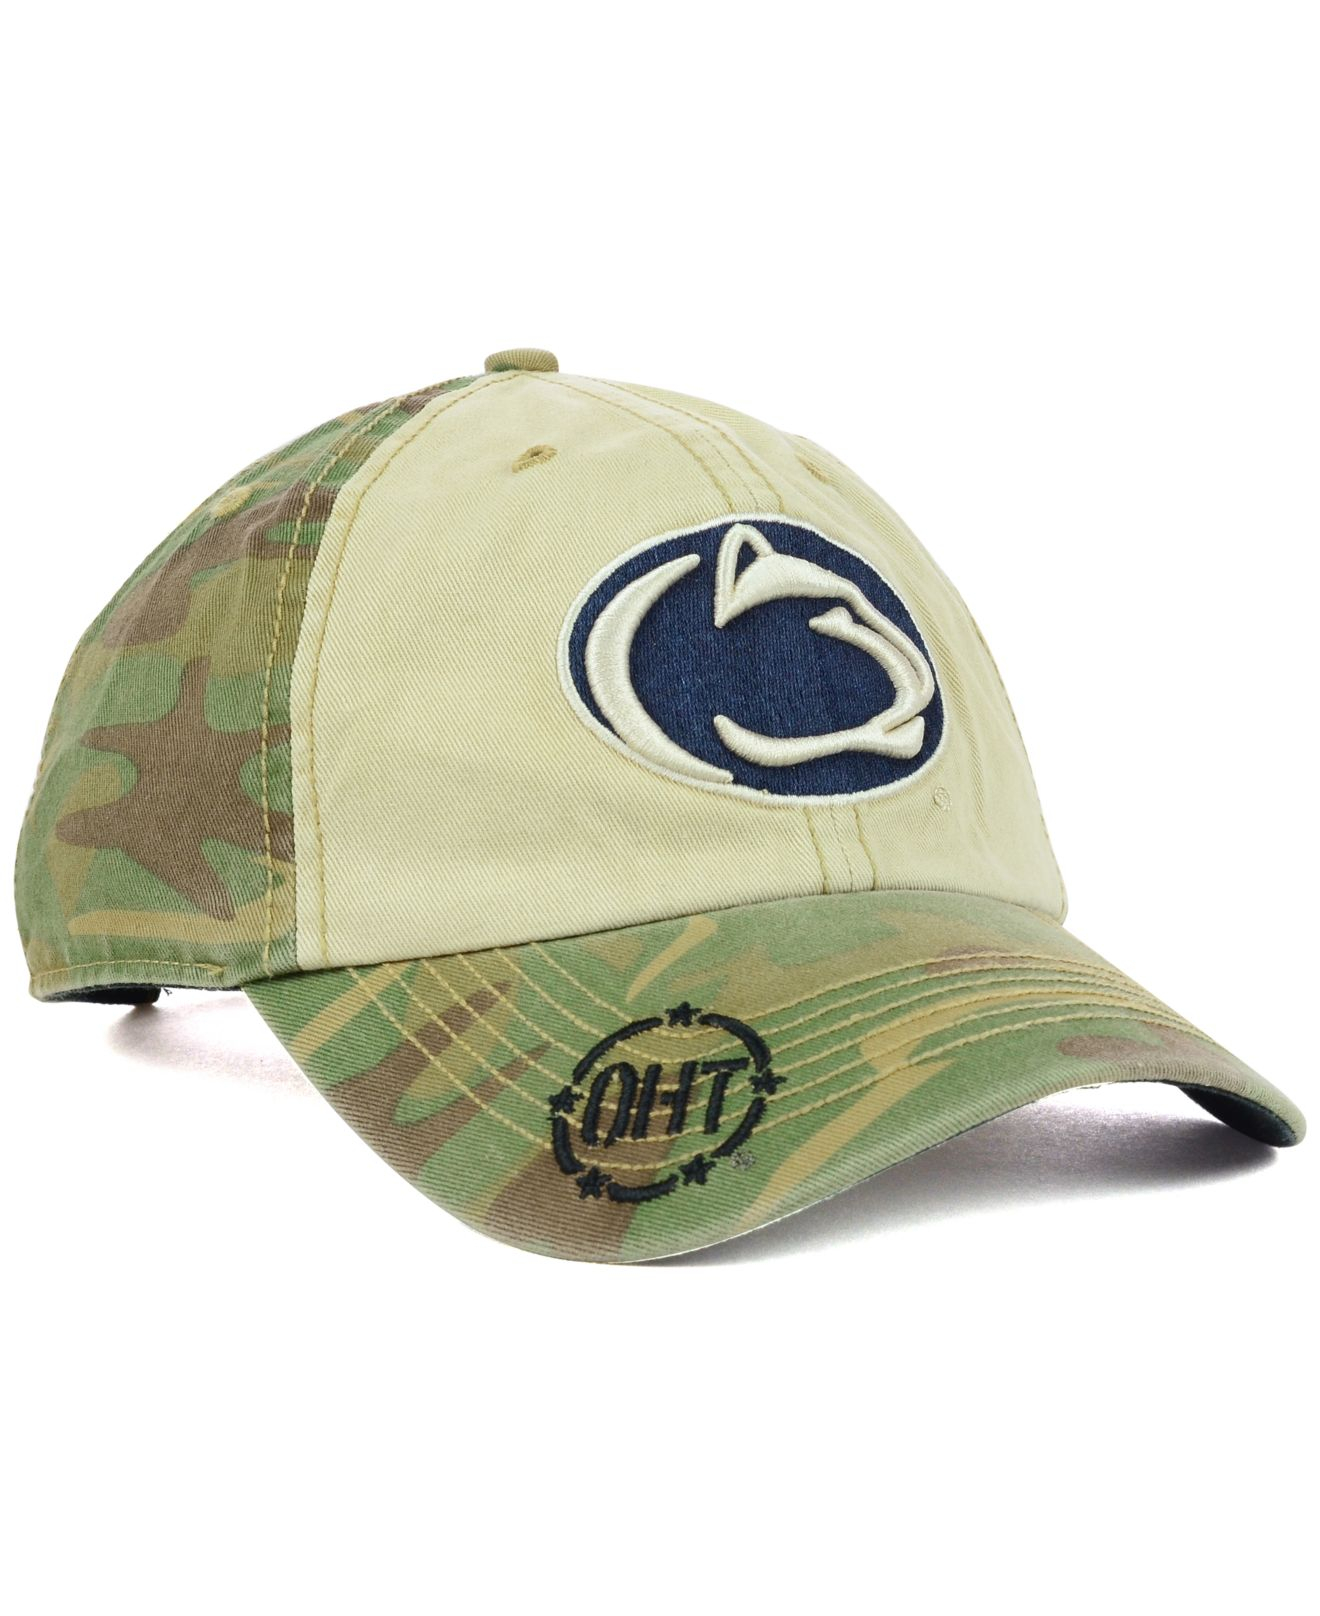 c3598a8b1d2c9 Lyst - 47 Brand Penn State Nittany Lions Oht Gordie Clean Up Cap in ...